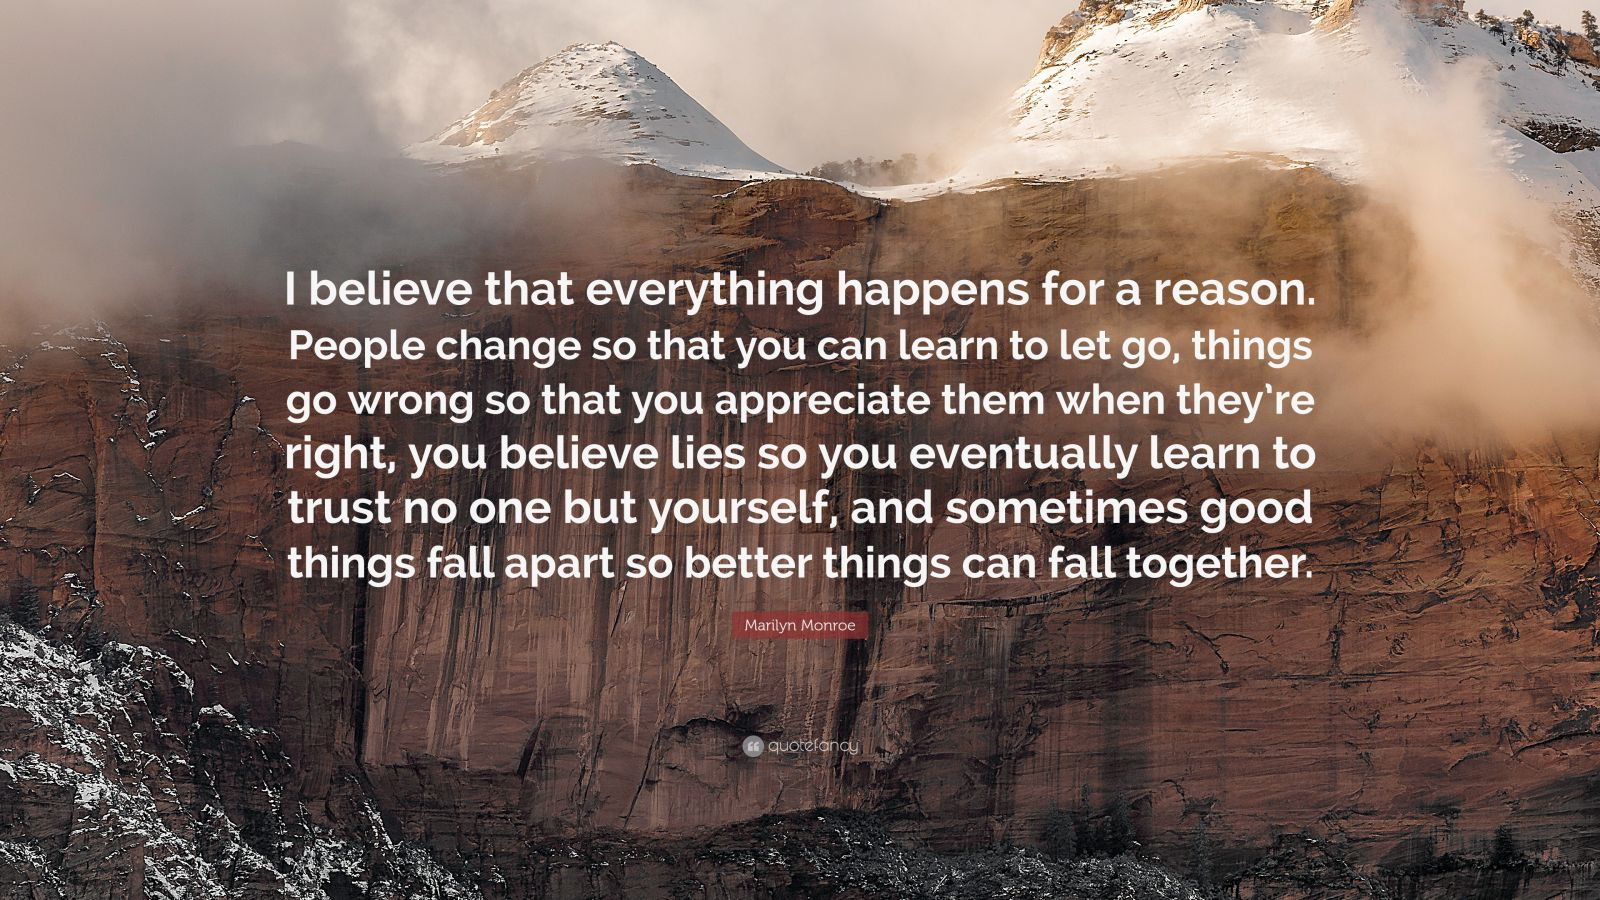 I believe that everything happens for a reason speech